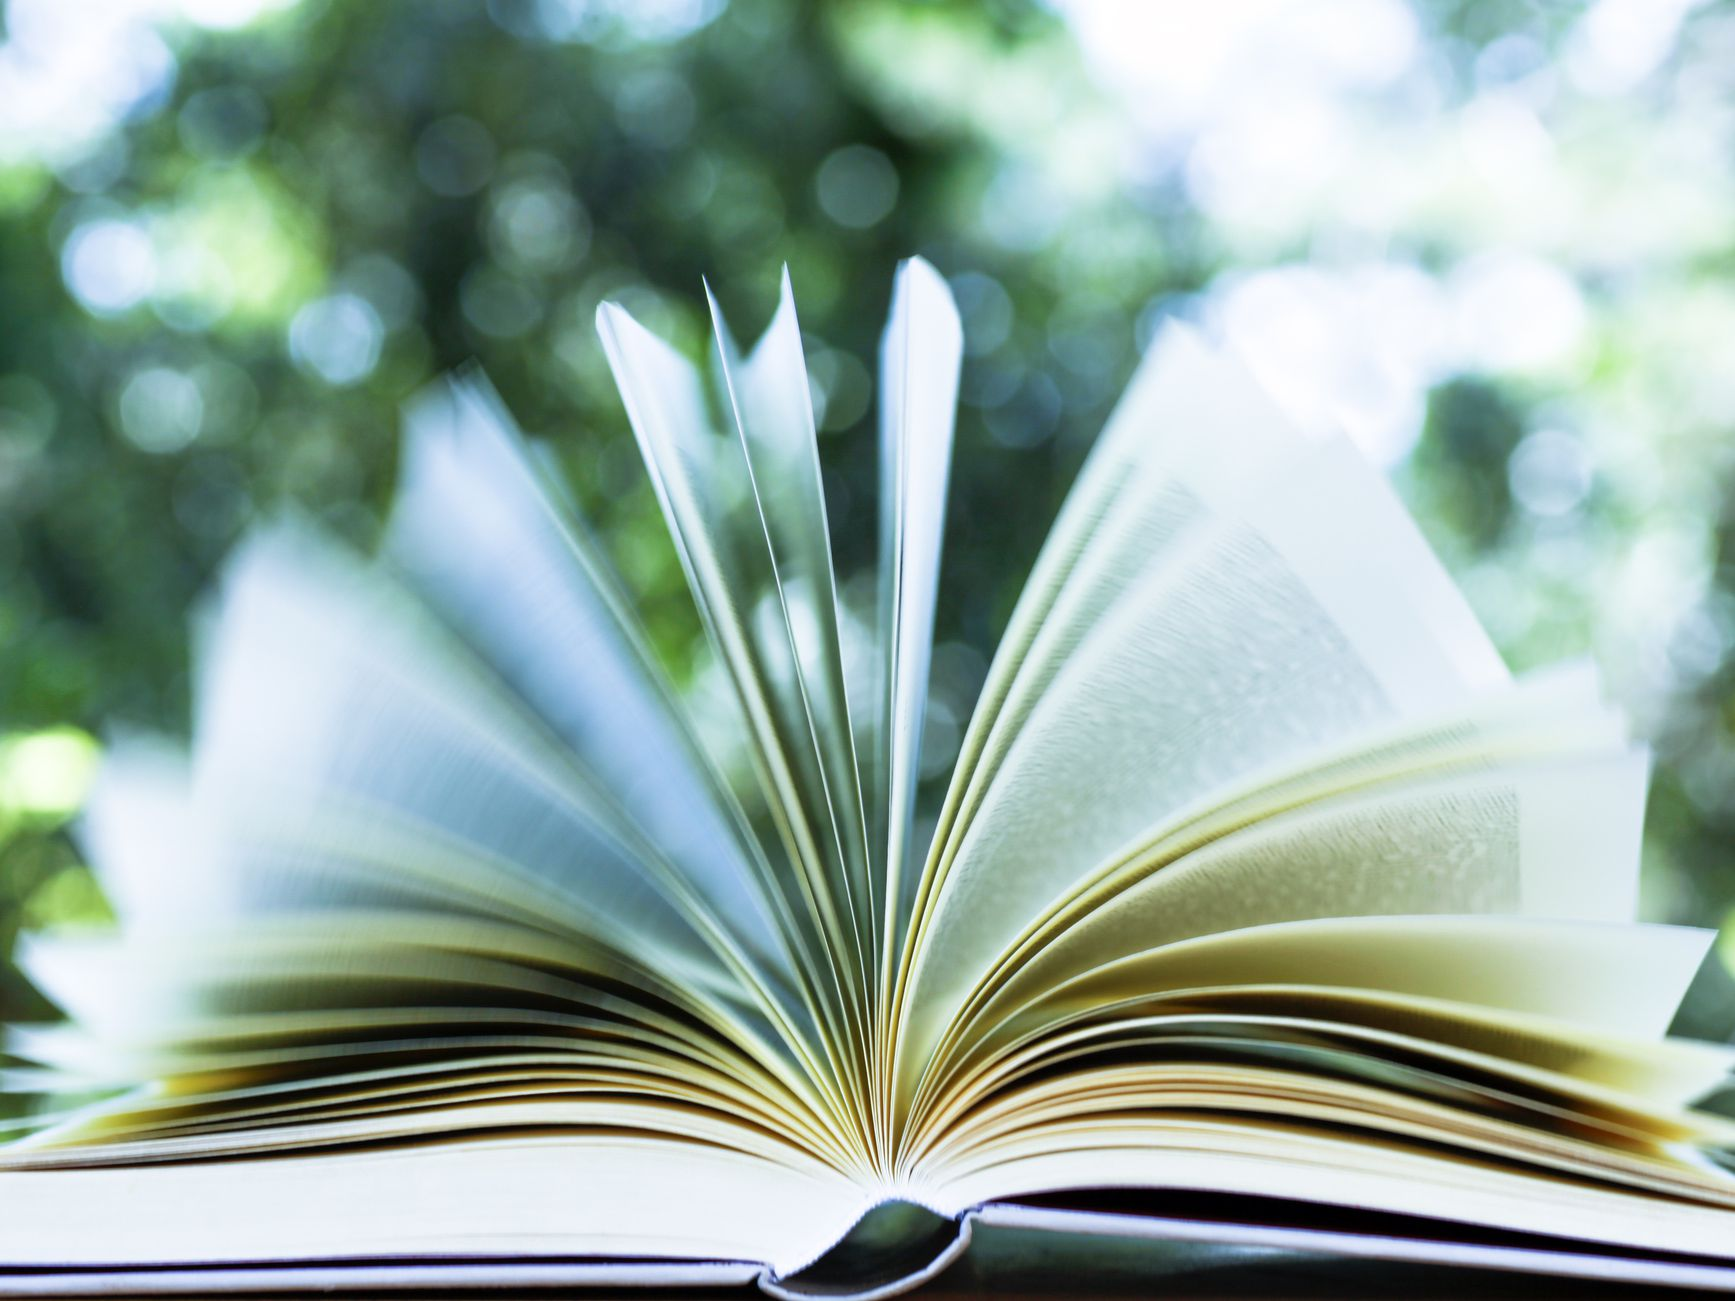 What Are the Different Parts of a Book?